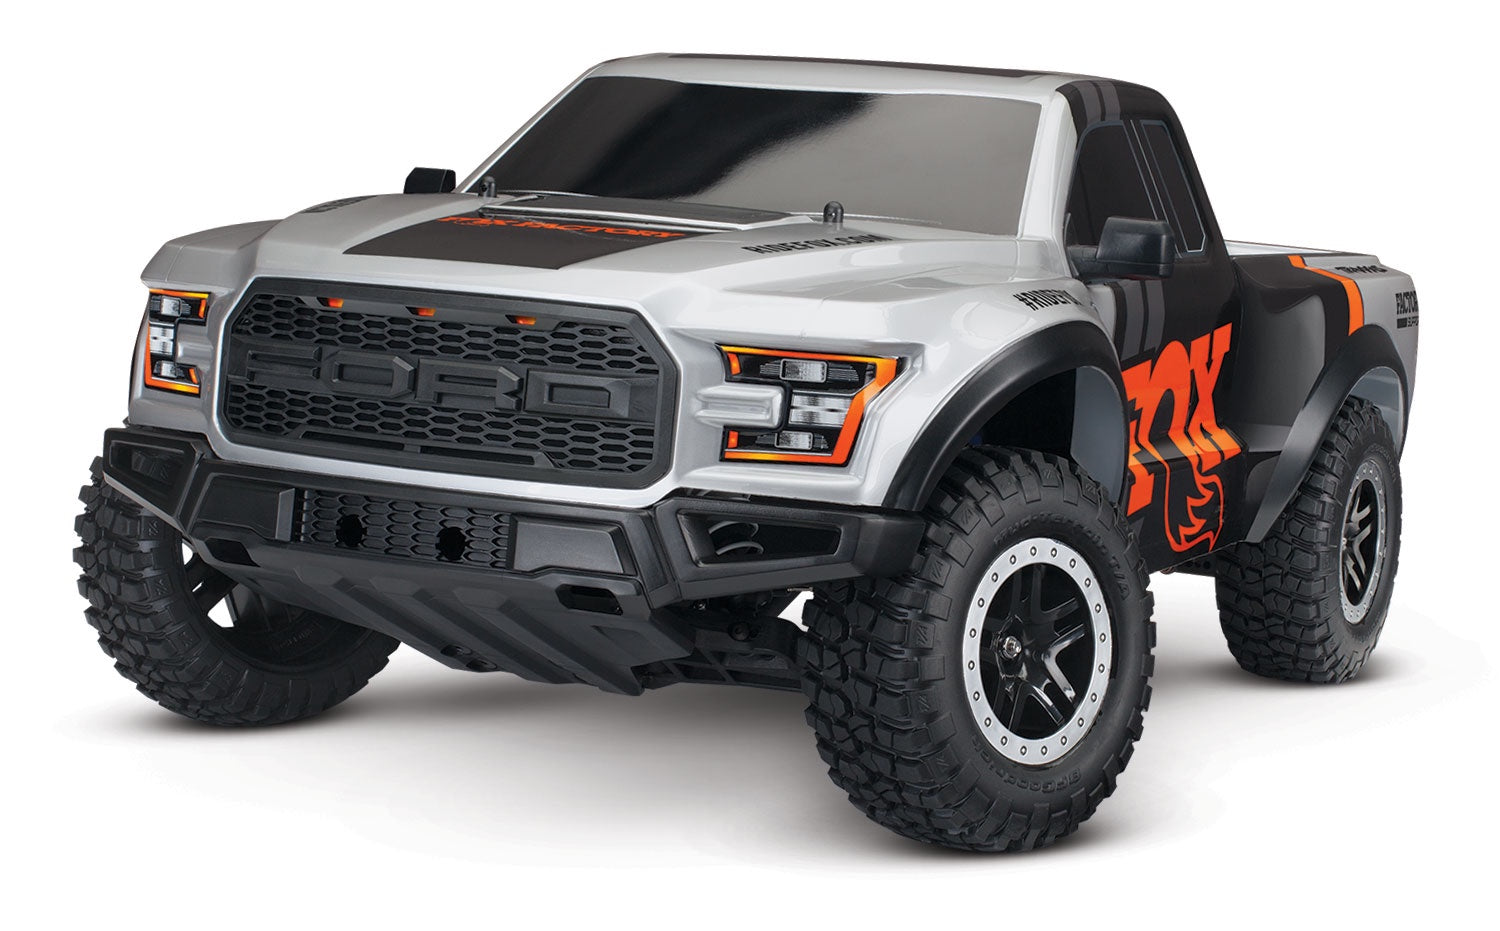 Traxxas 58094-1 - Ford Fox F-150 Raptor: 1/10 Scale 2WD Ford F-150 Raptor   Ready-To-Race®